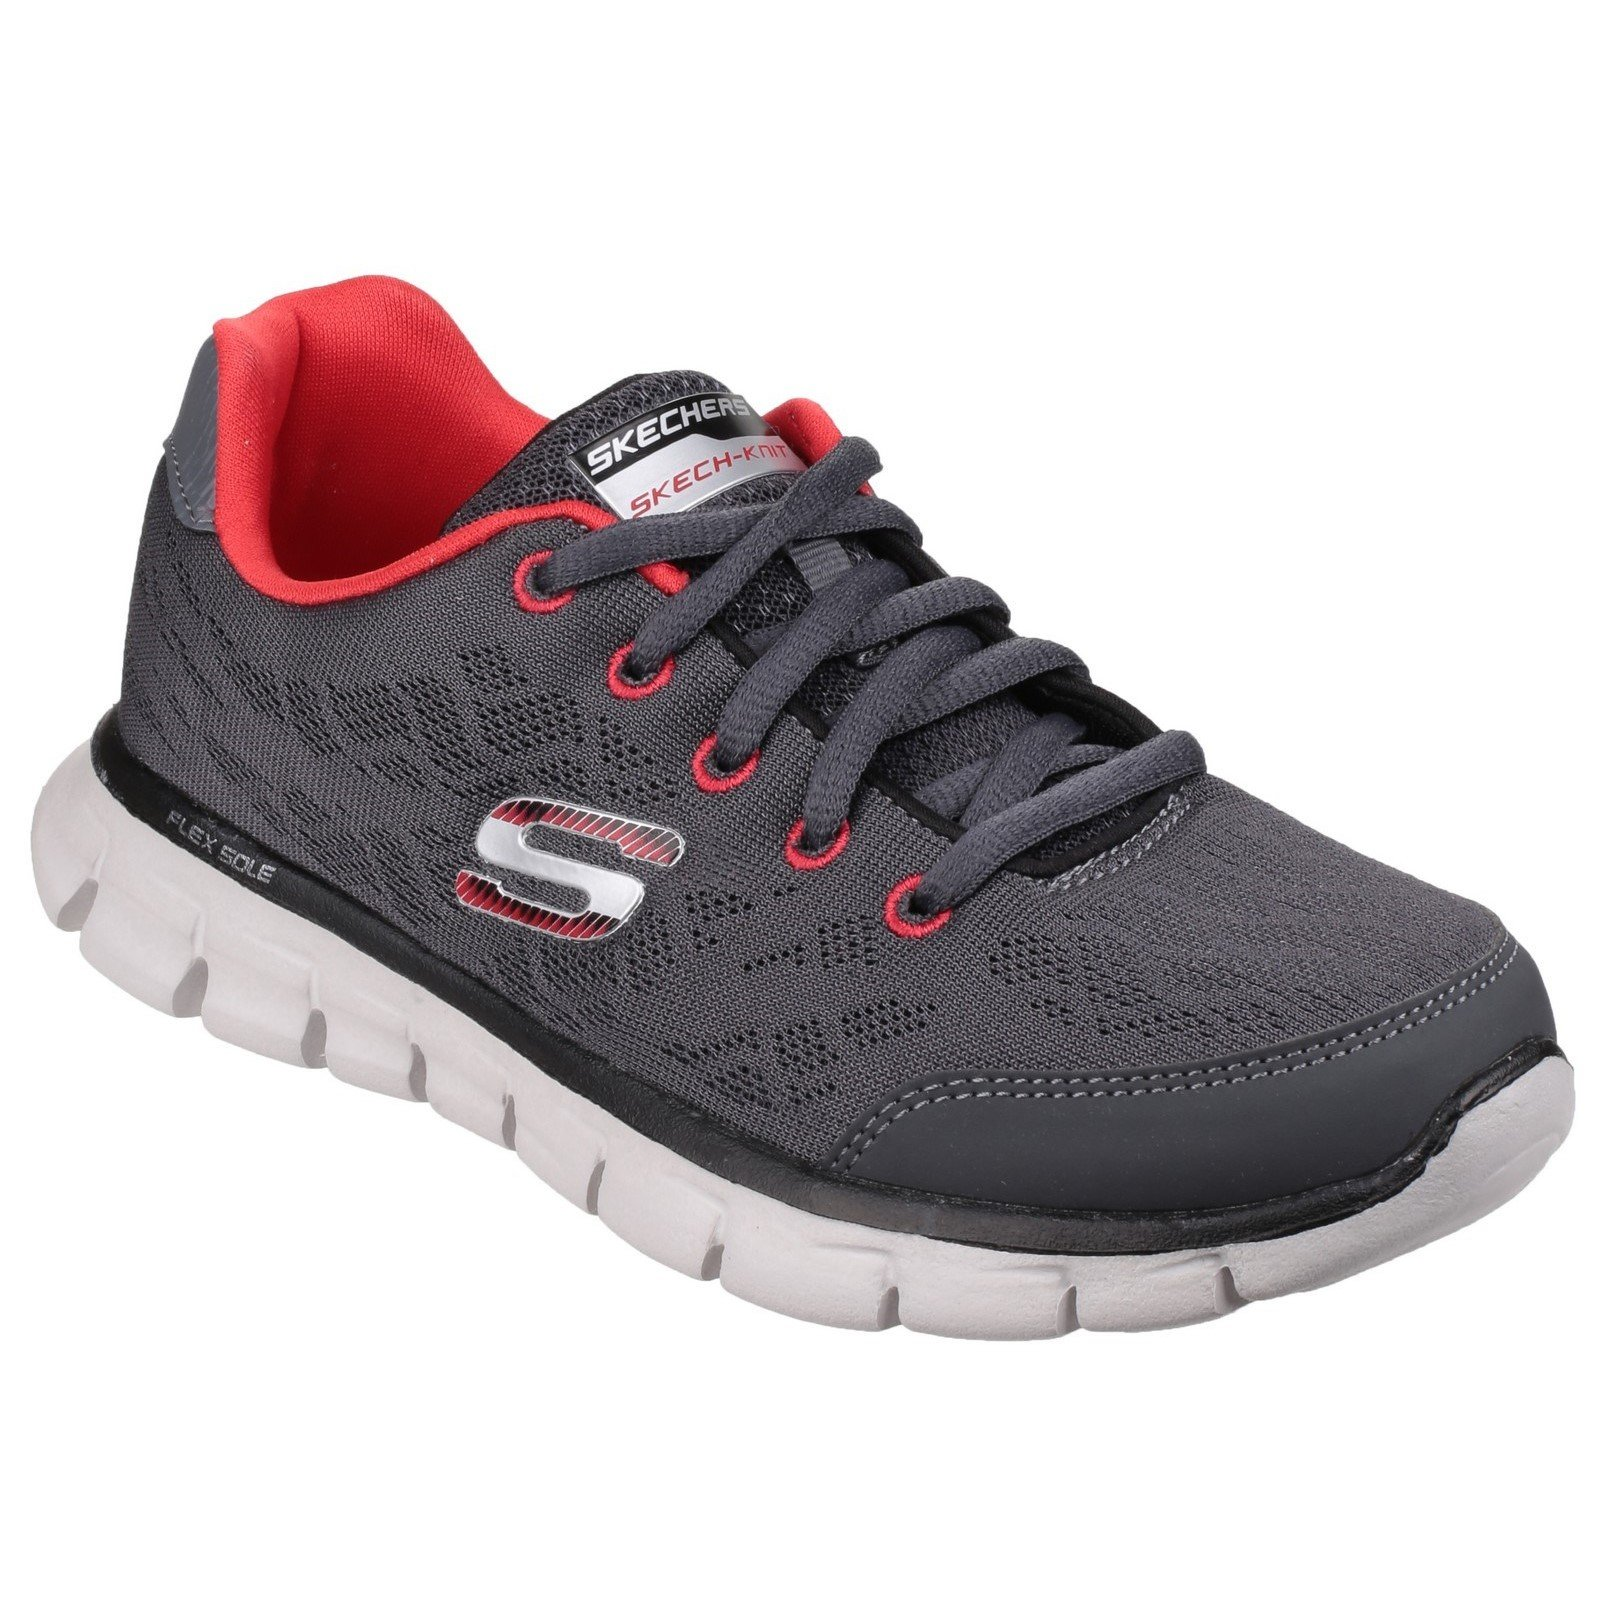 Skechers Kid's Synergy Fine Tune Lace up Trainer Multicolor 23918 - Grey/Red 13.5